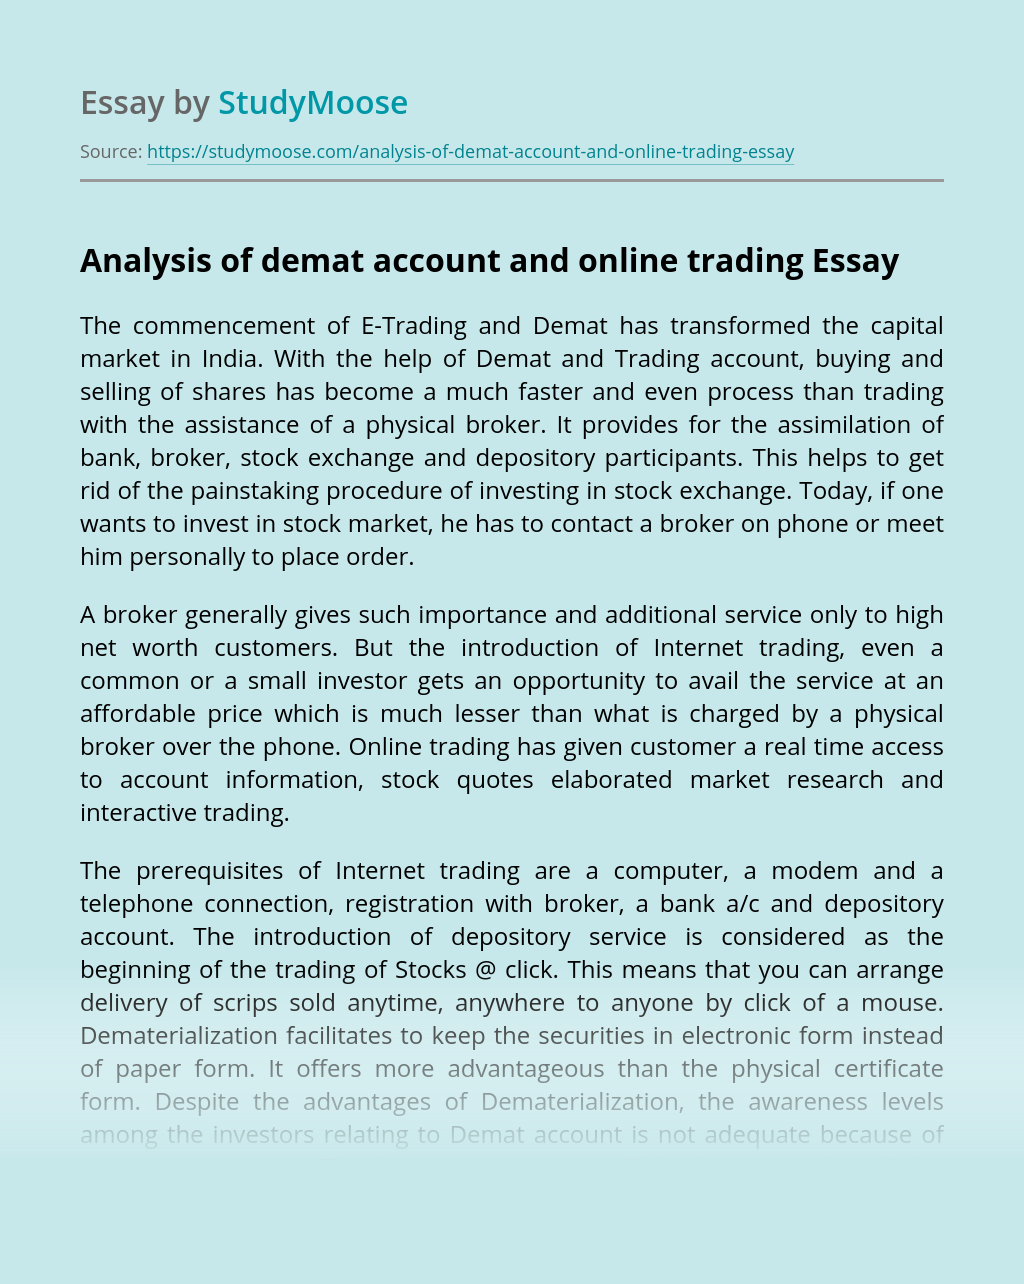 Analysis of Demat Account and Online Trading